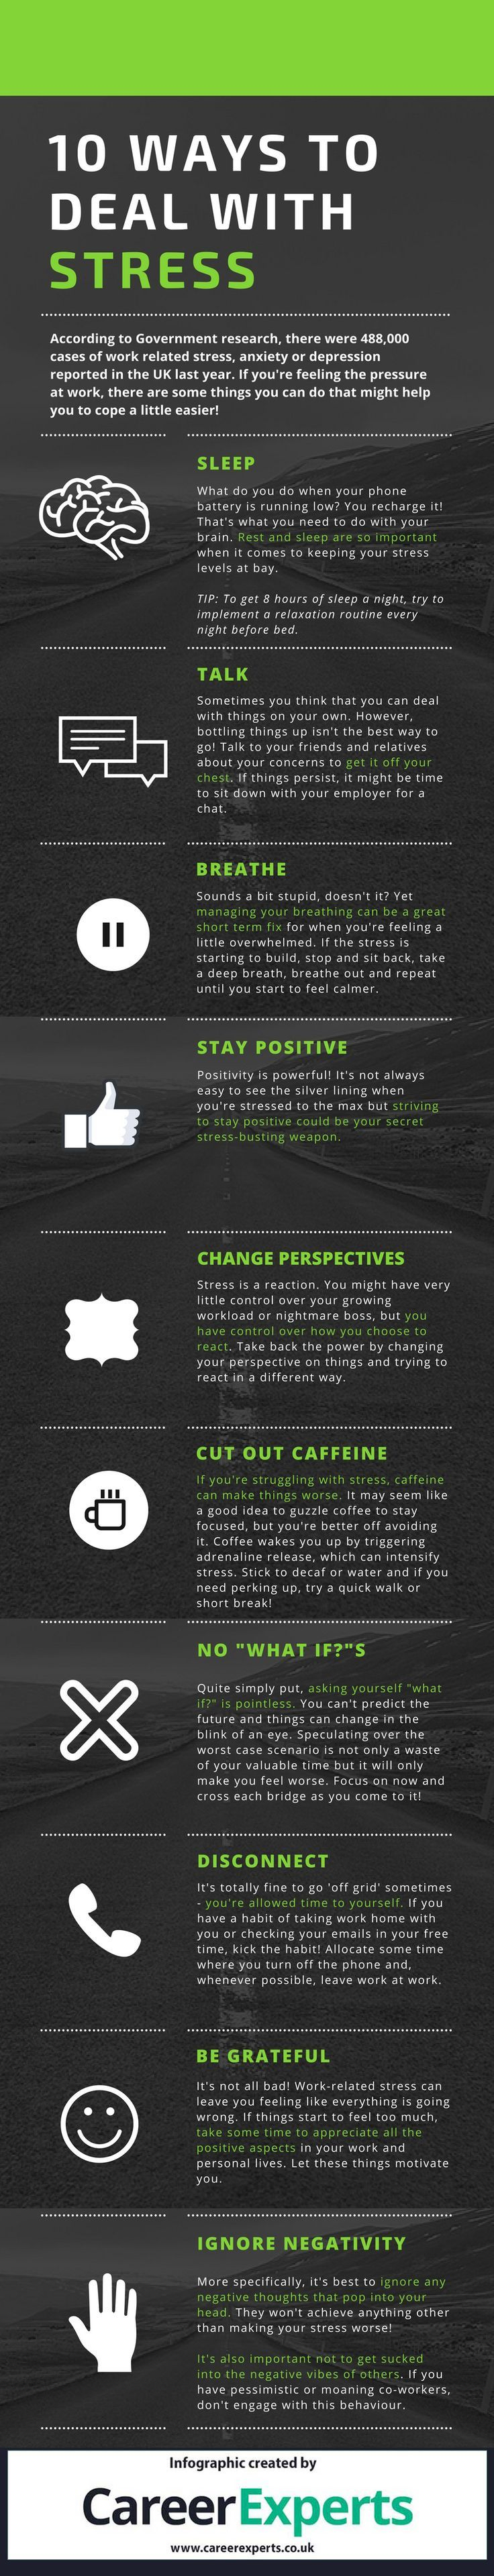 psychology   psychology   10 tricks to deal with stress infographic elearninginfograp